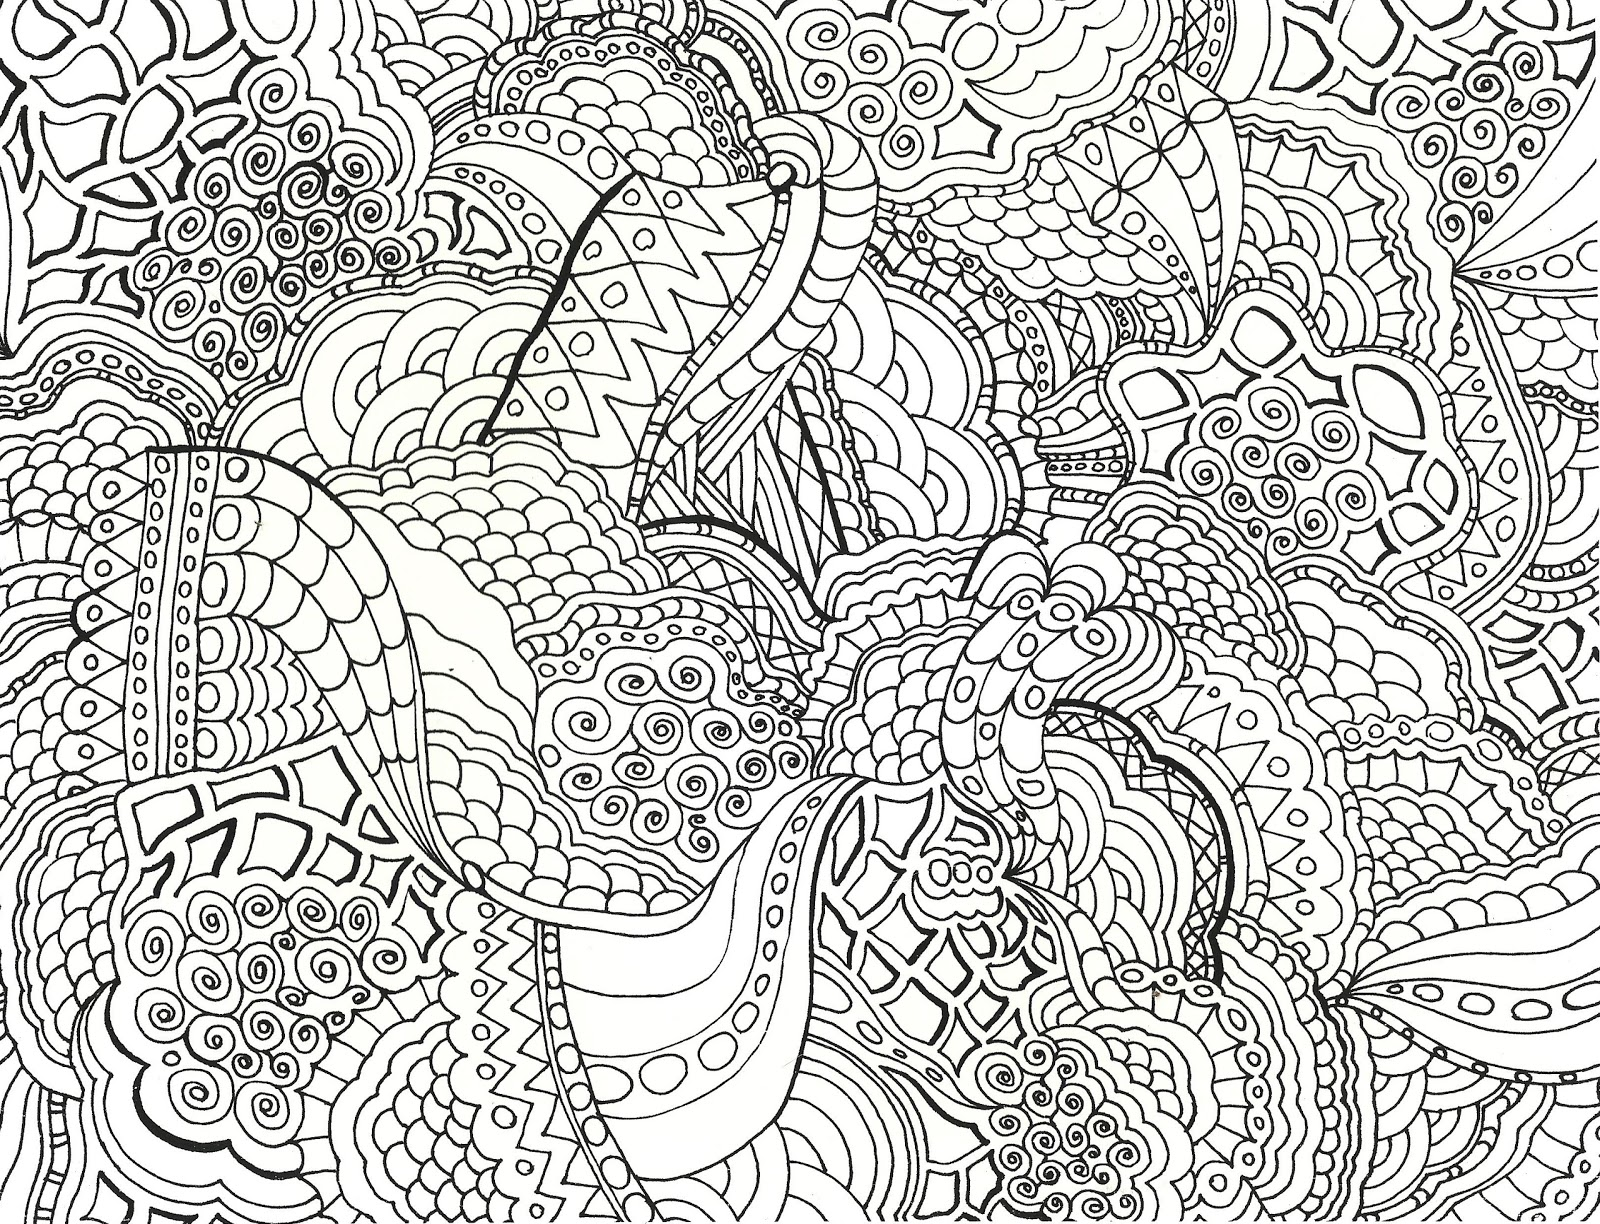 j coloring pages for adults - photo #37